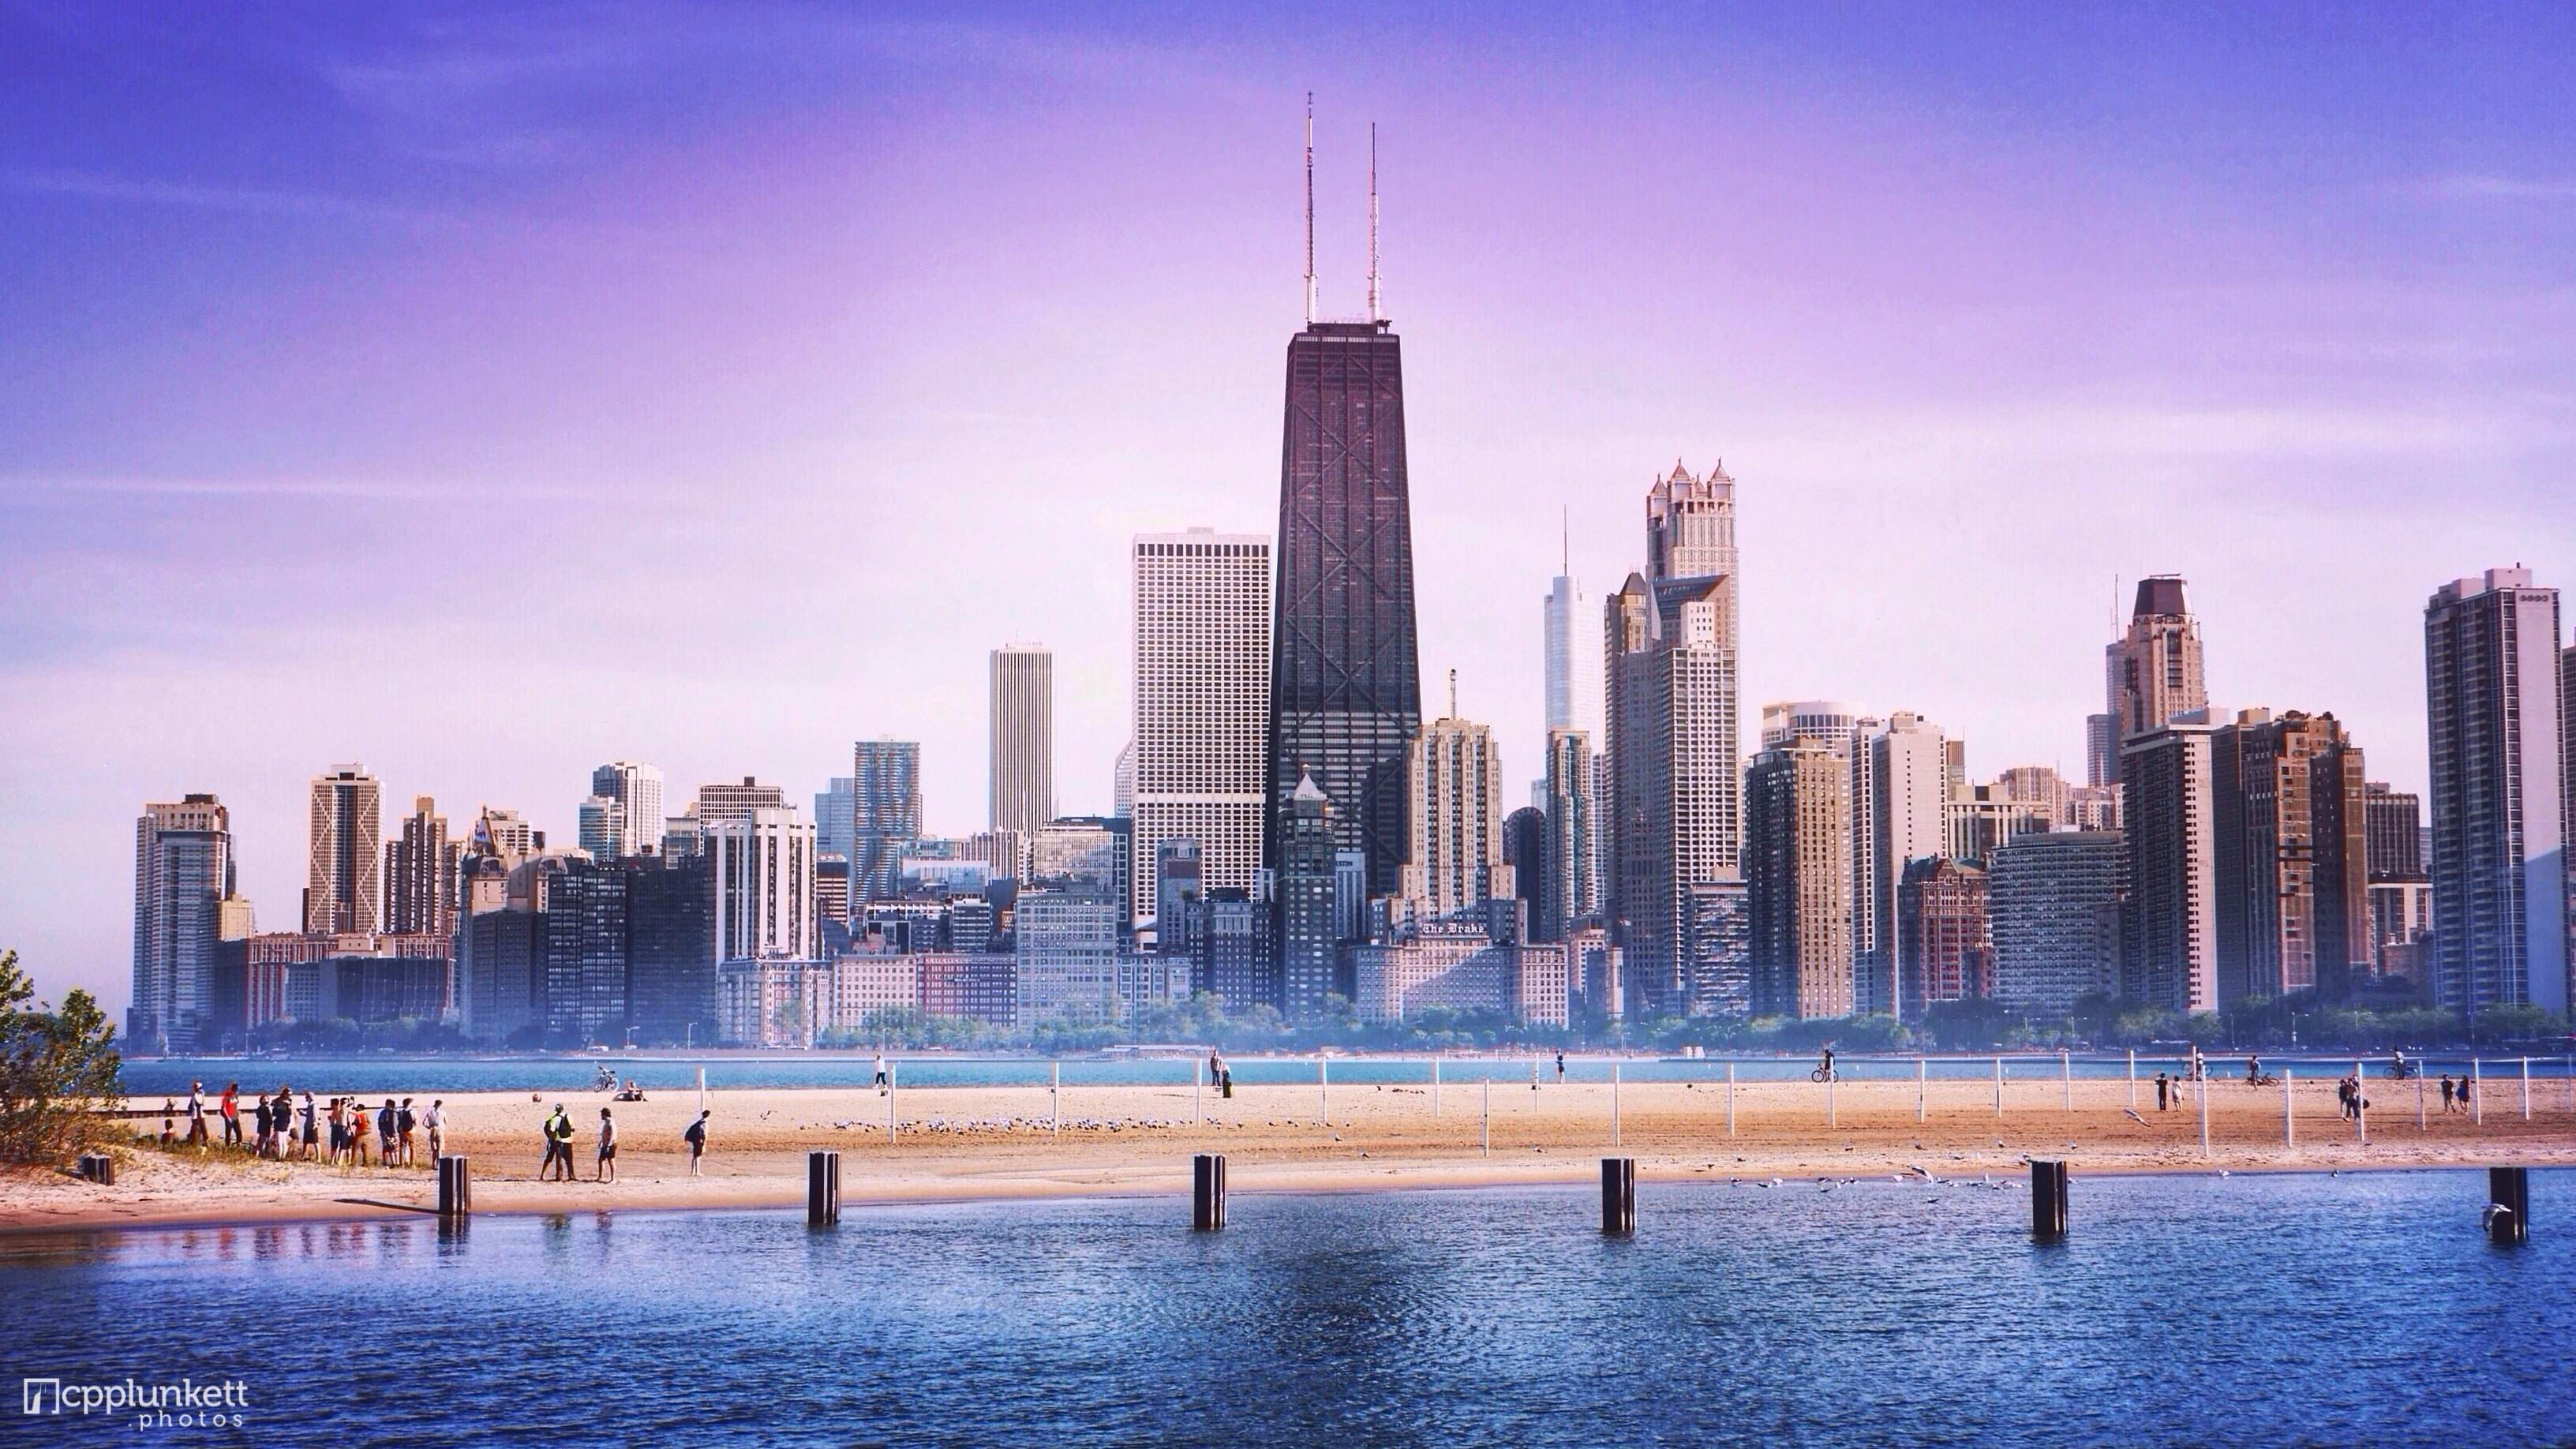 12th Street Beach Chicago, north avenue beach hook pier | Beautiful Chicago Photos